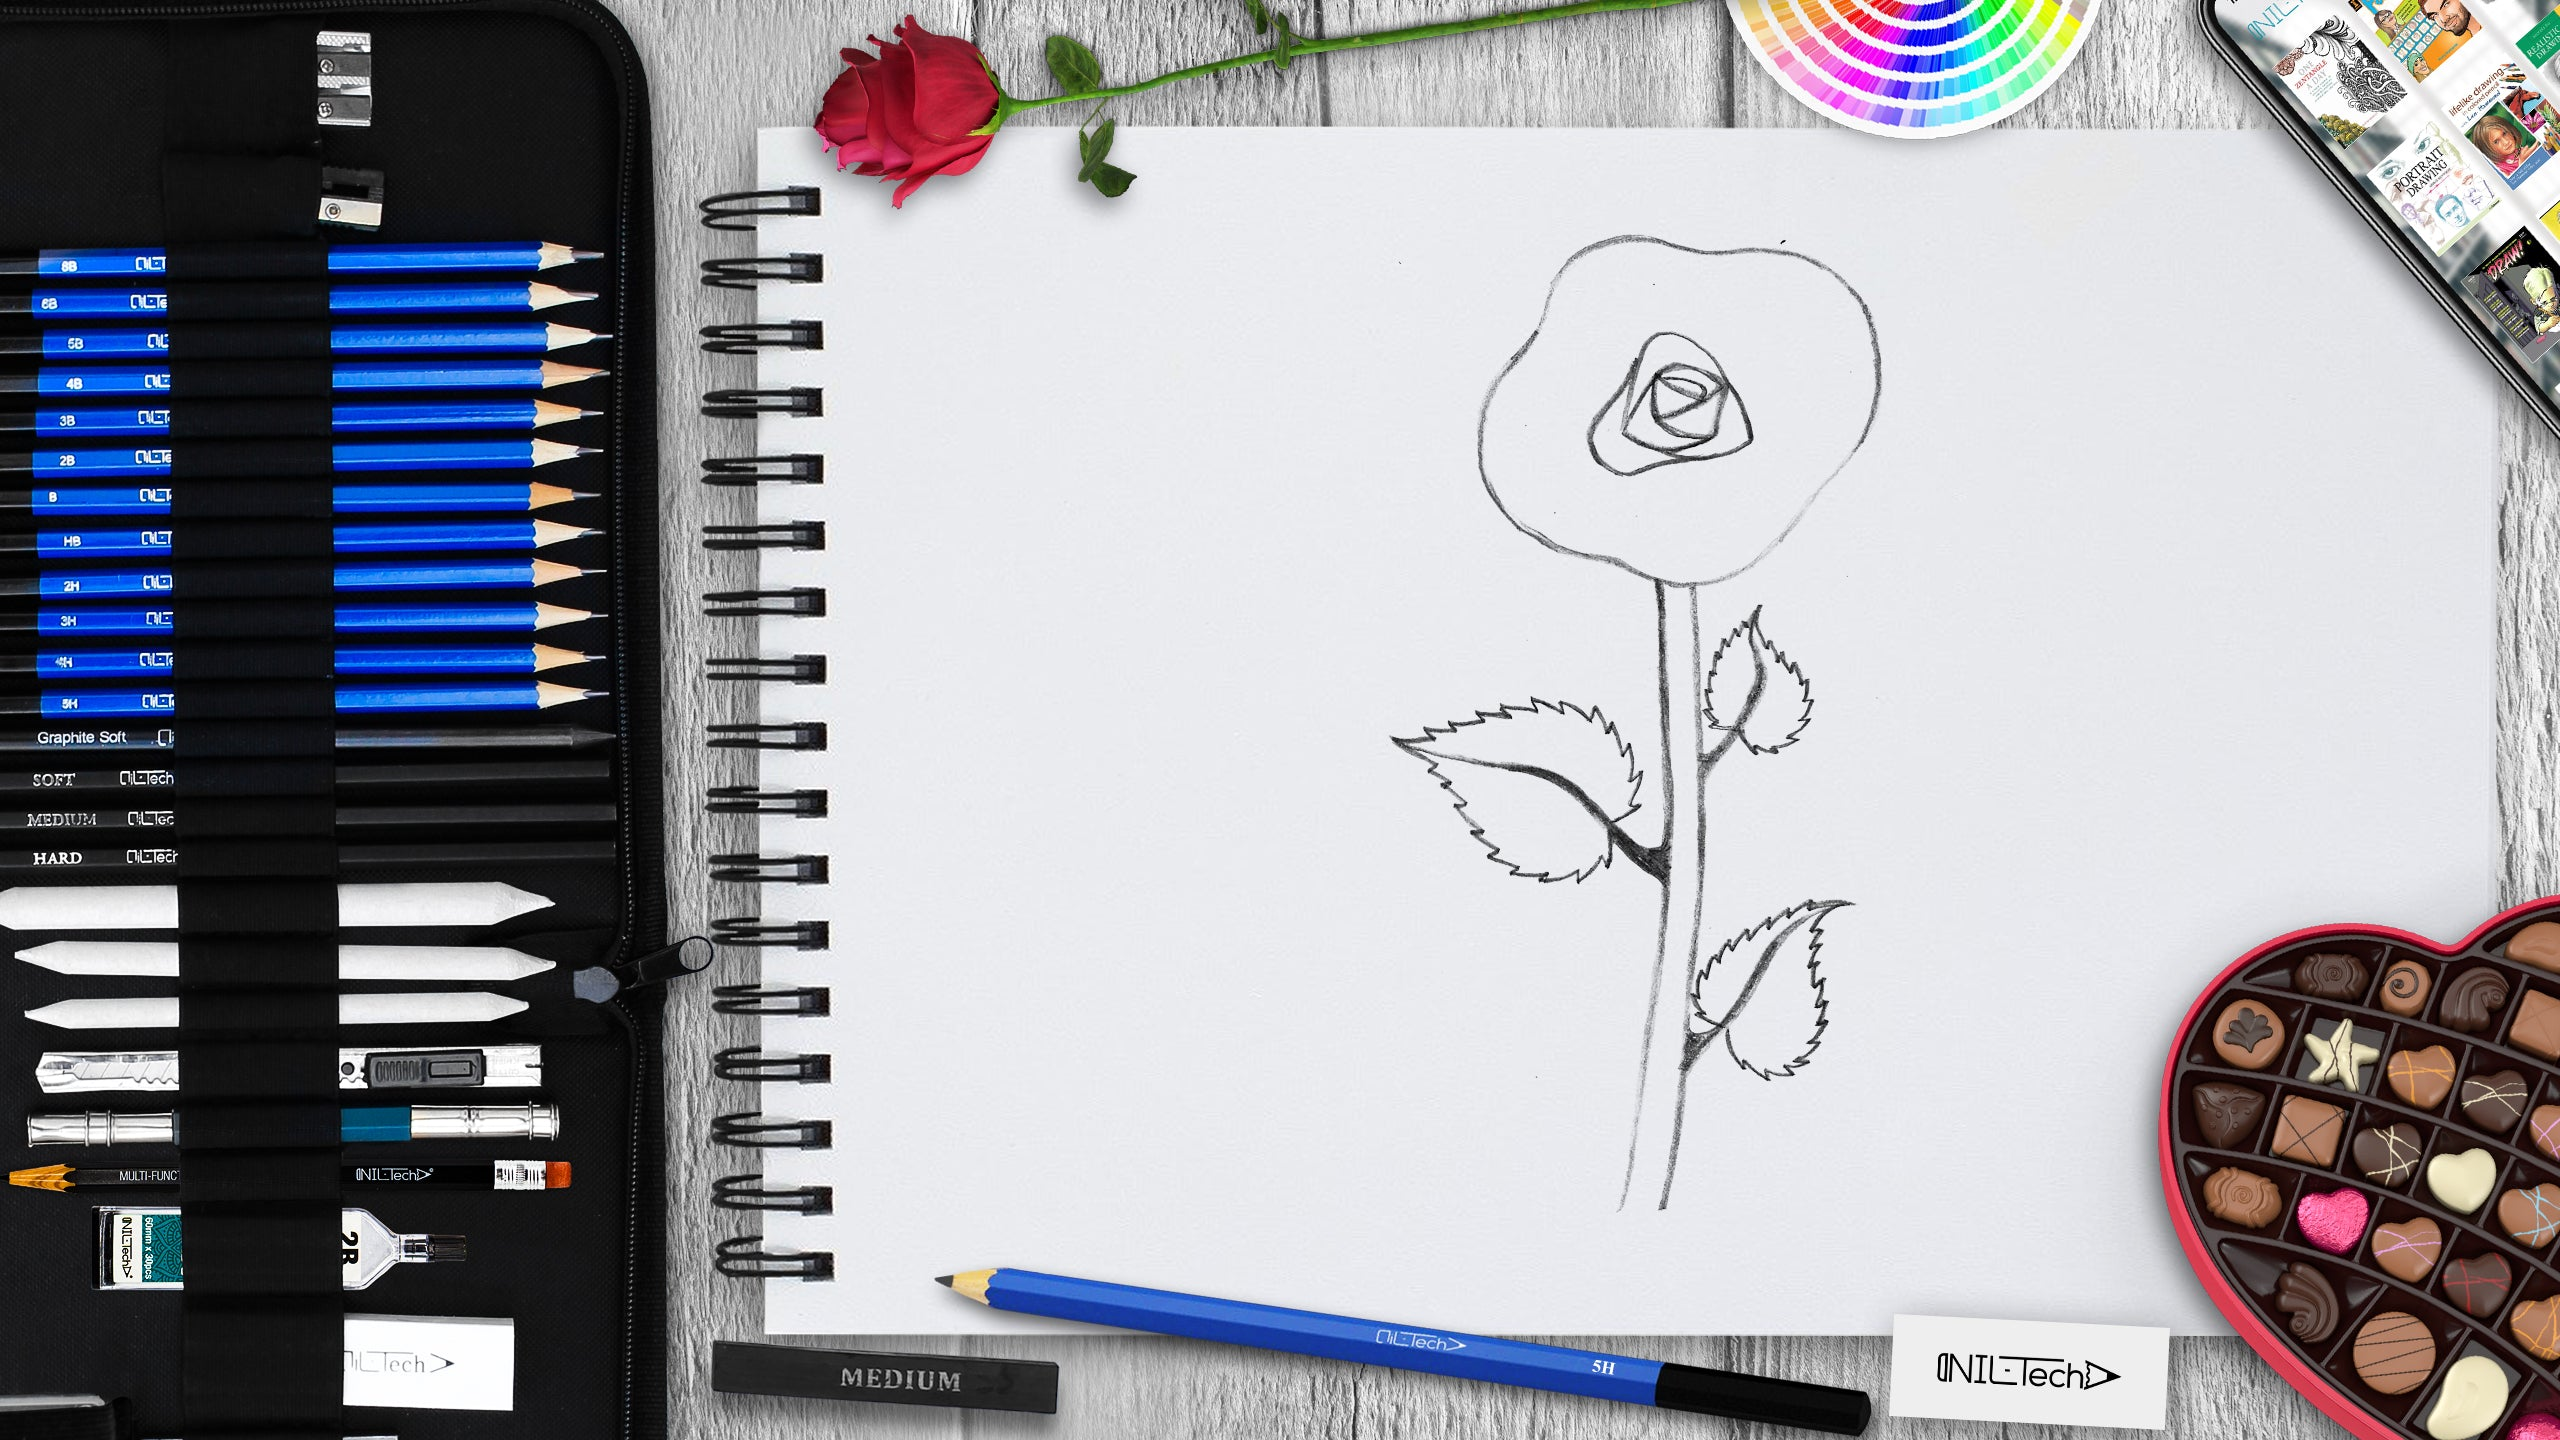 how to draw a rose flower step by step